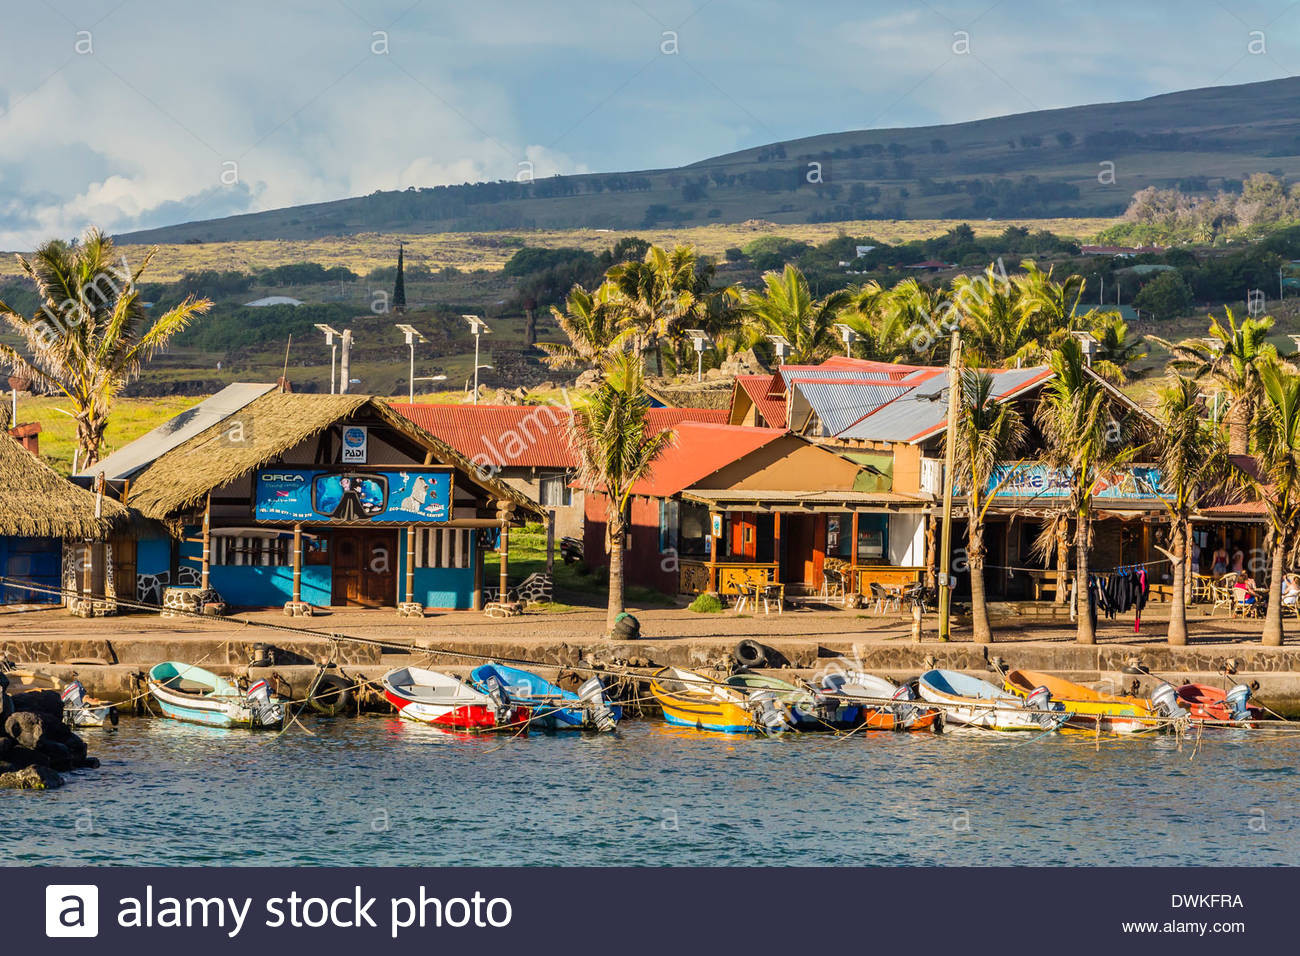 the-harbor-at-hanga-roa-on-easter-island-isla-de-pascua-rapa-nui-chile-DWKFRA.jpg.c39dde1b7007bea1937dee144c7909a4.jpg